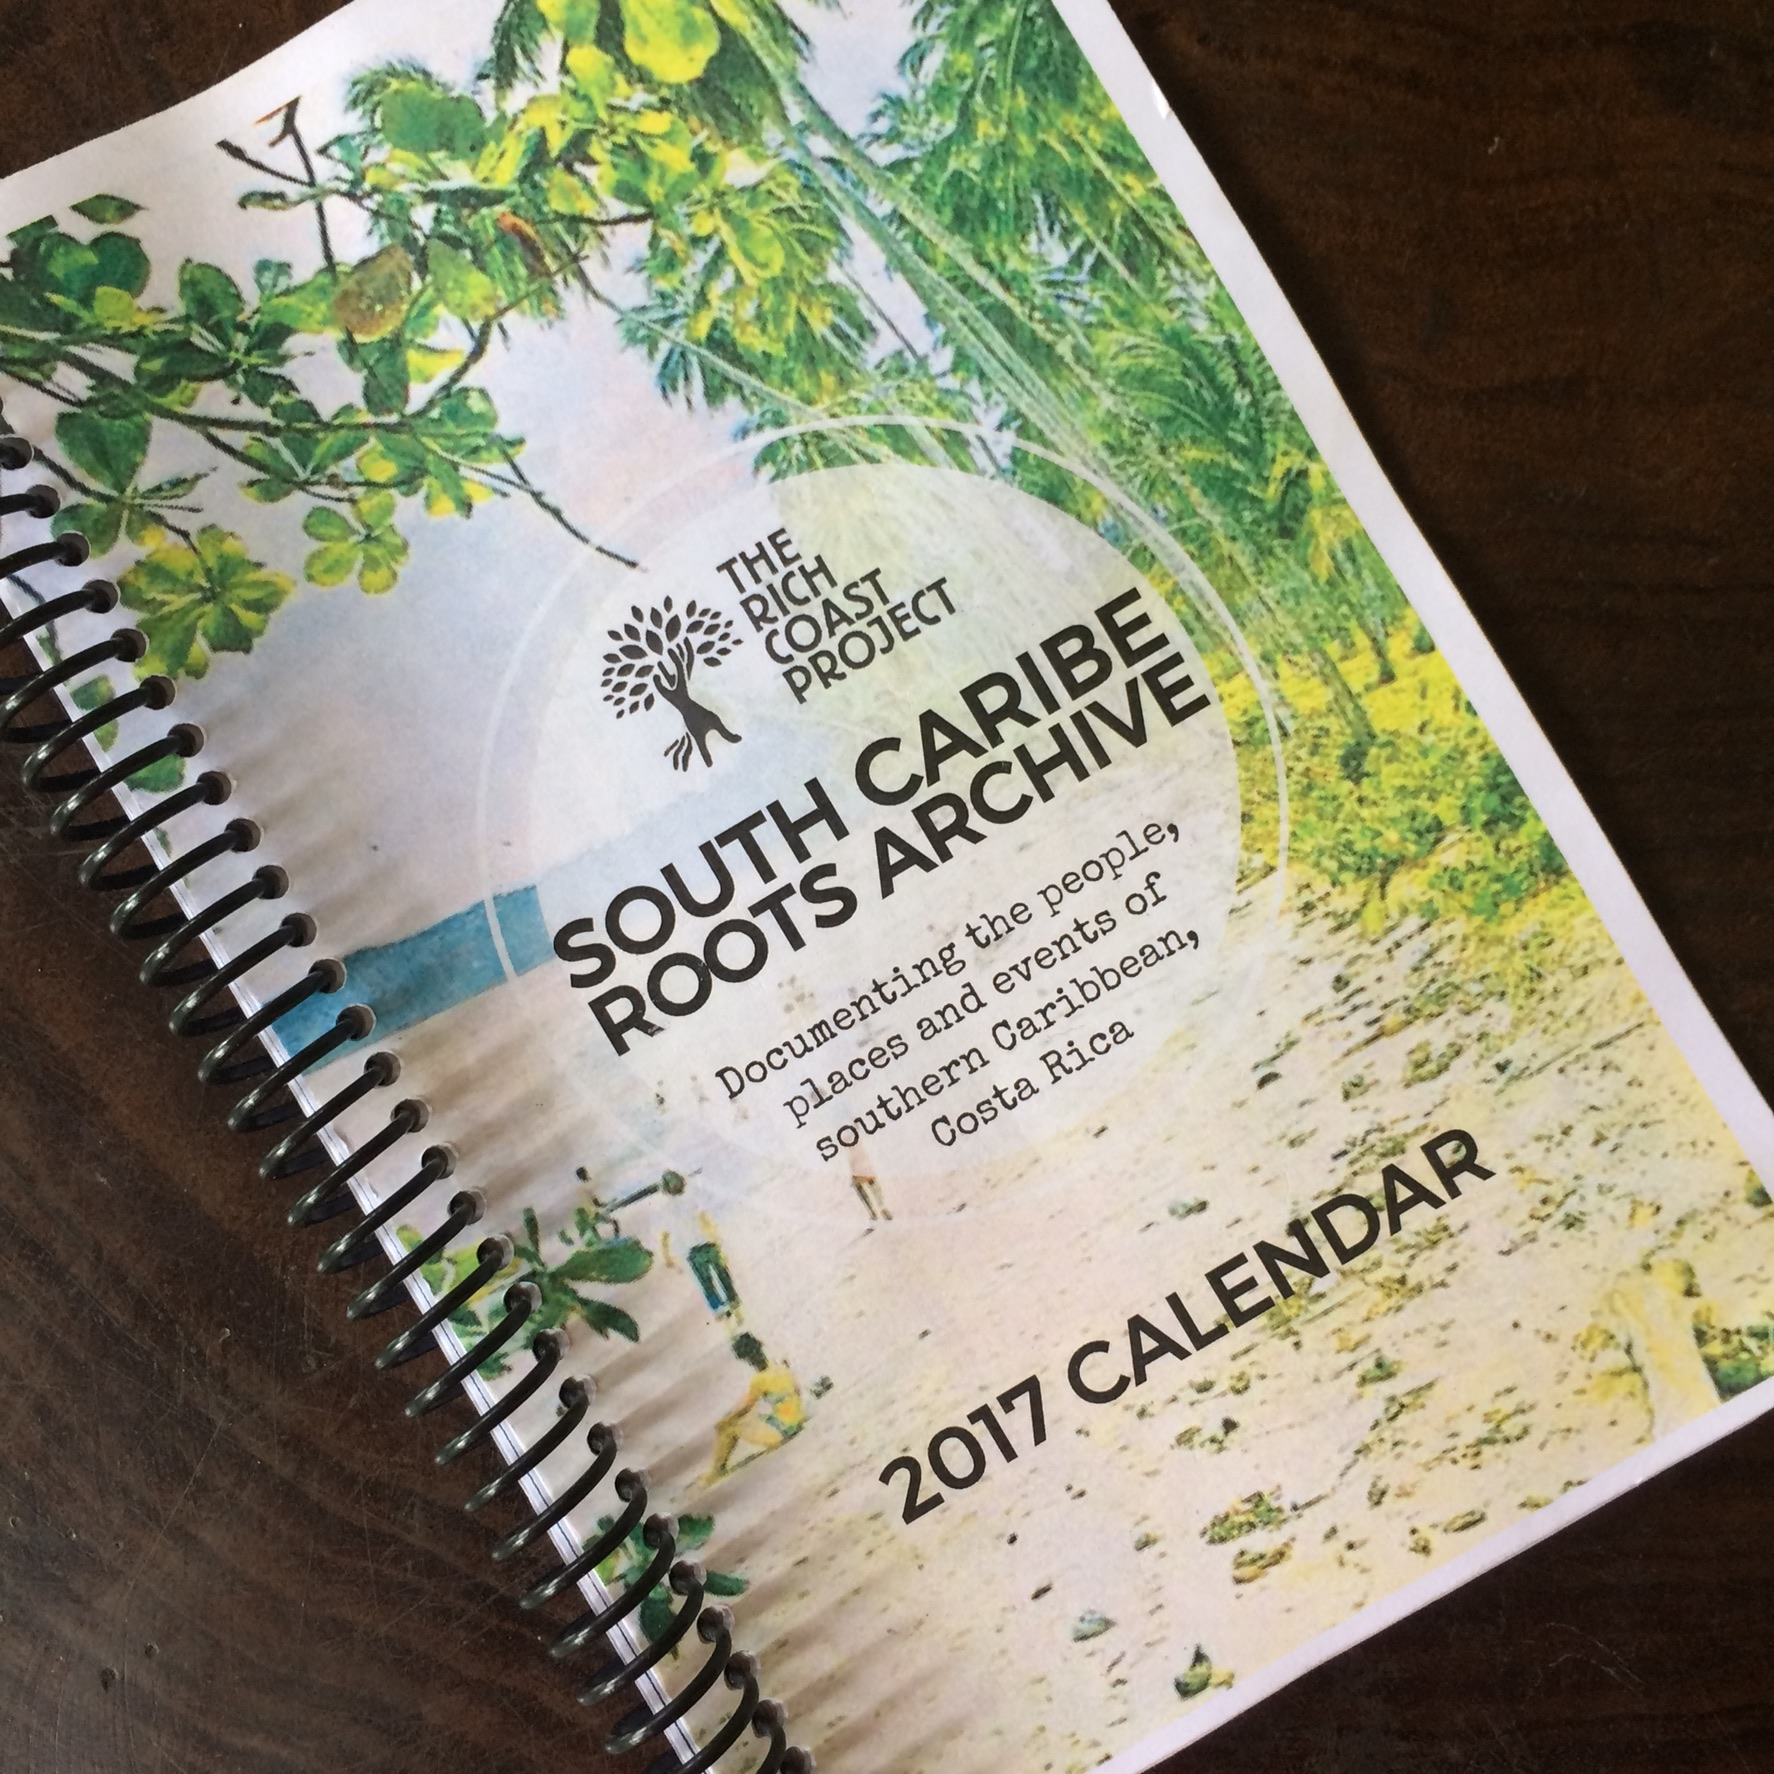 The 2017 Calendar will be printed and distributed free within the community with the help of sponsors. Additional calendars will be available for purchase on www.therichcoastproject.org.